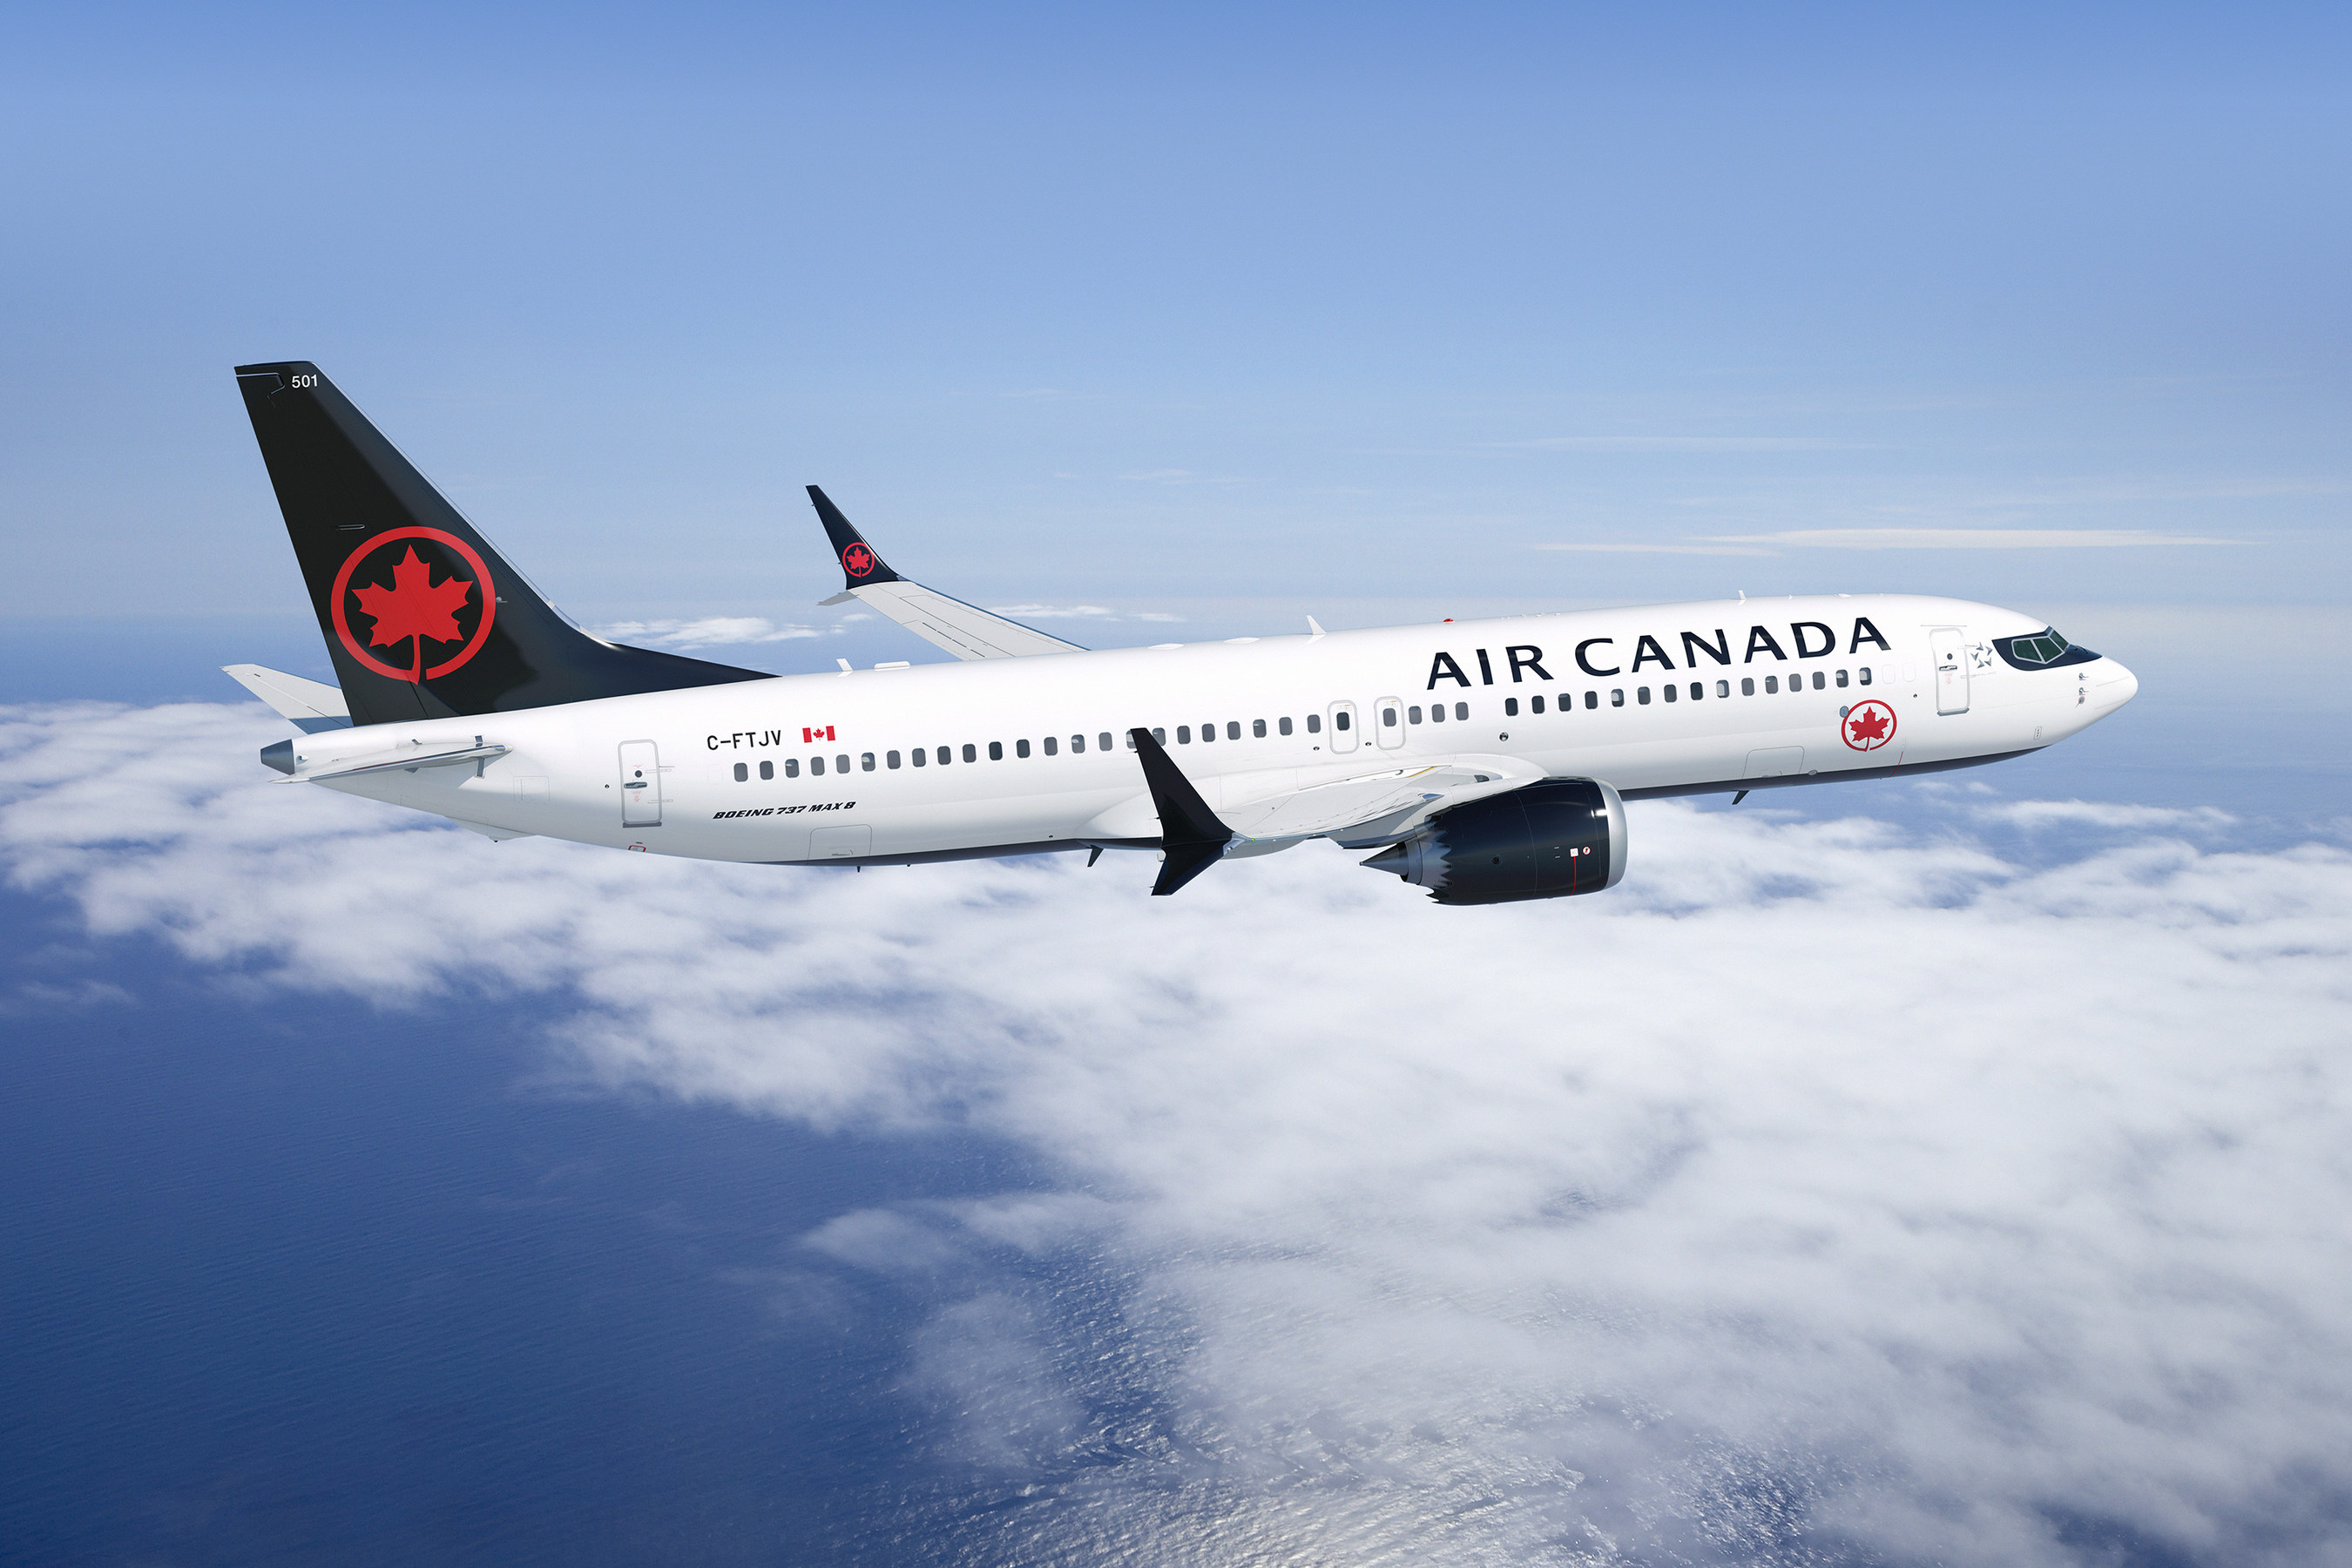 Air Canada S New Boeing 737 Max Enters Regular Service To